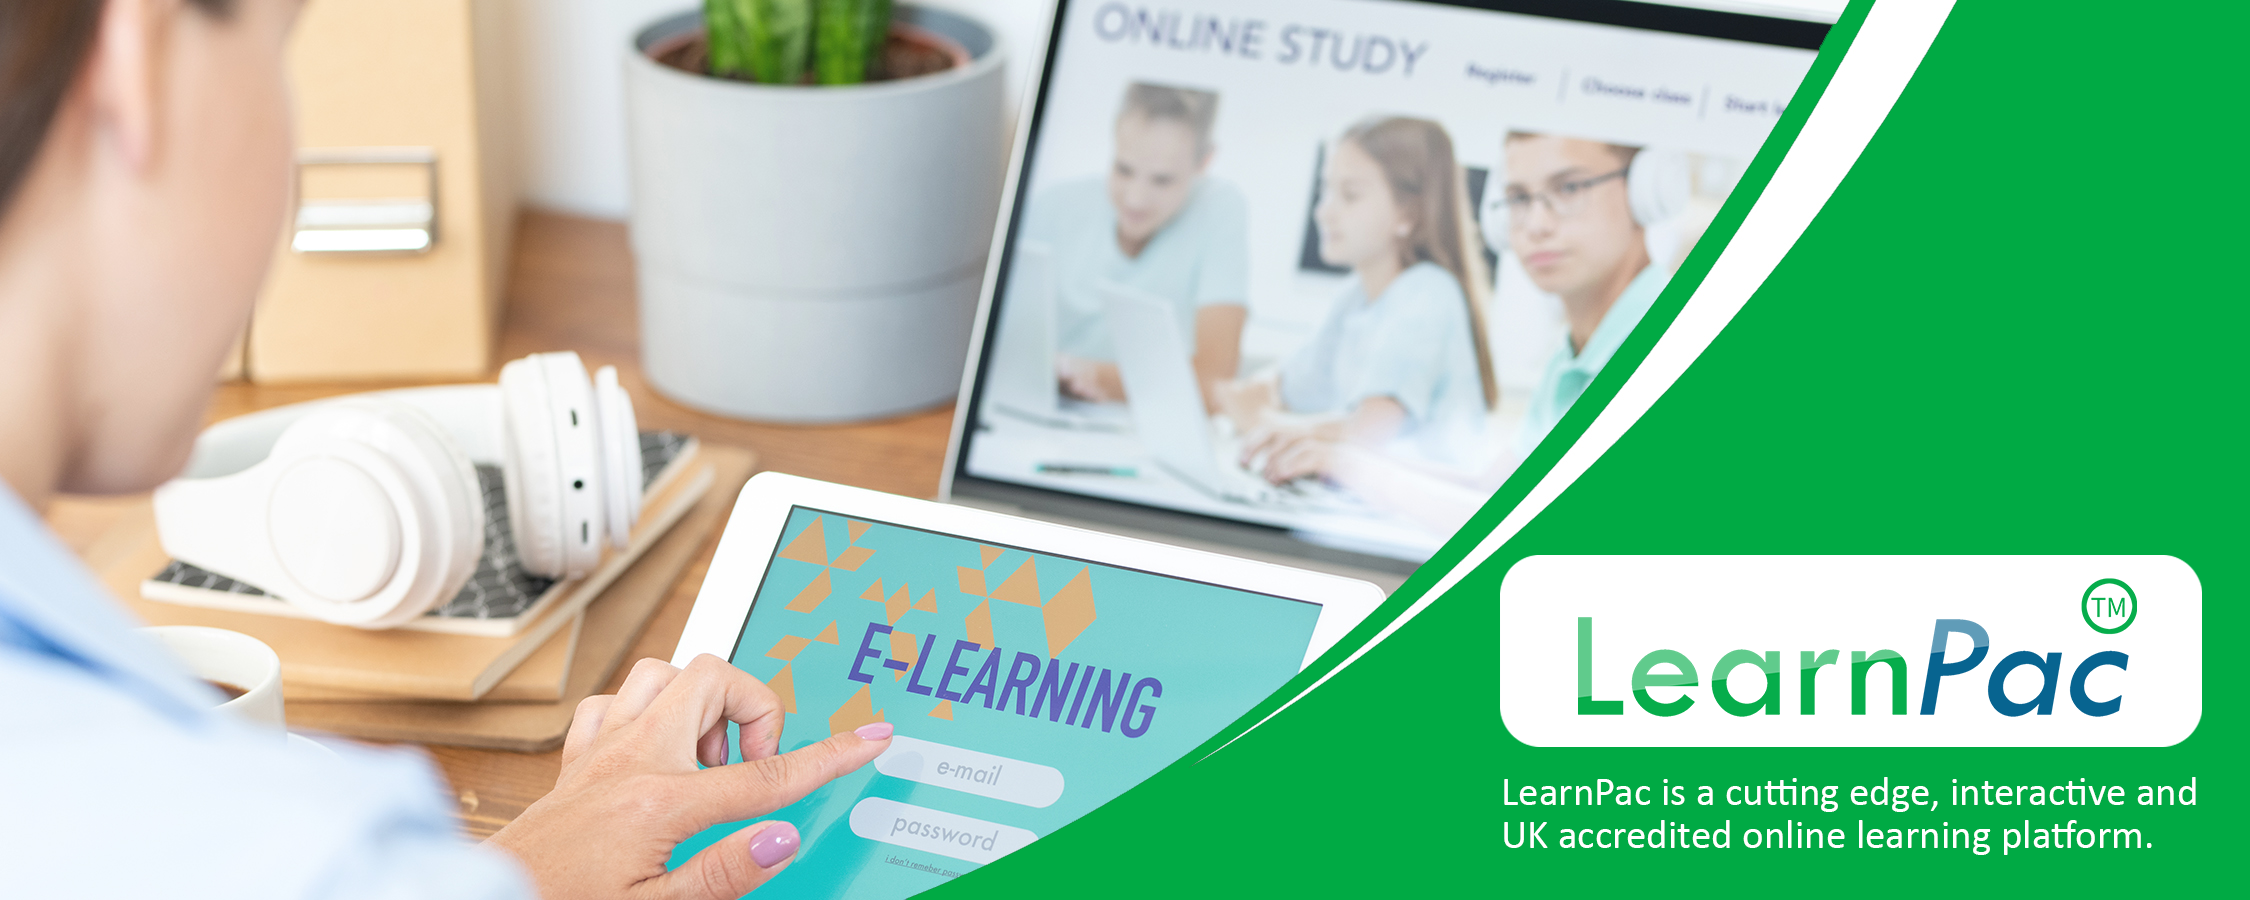 Chaperone for Health and Care - Online Learning Courses - E-Learning Courses - LearnPac Systems UK -